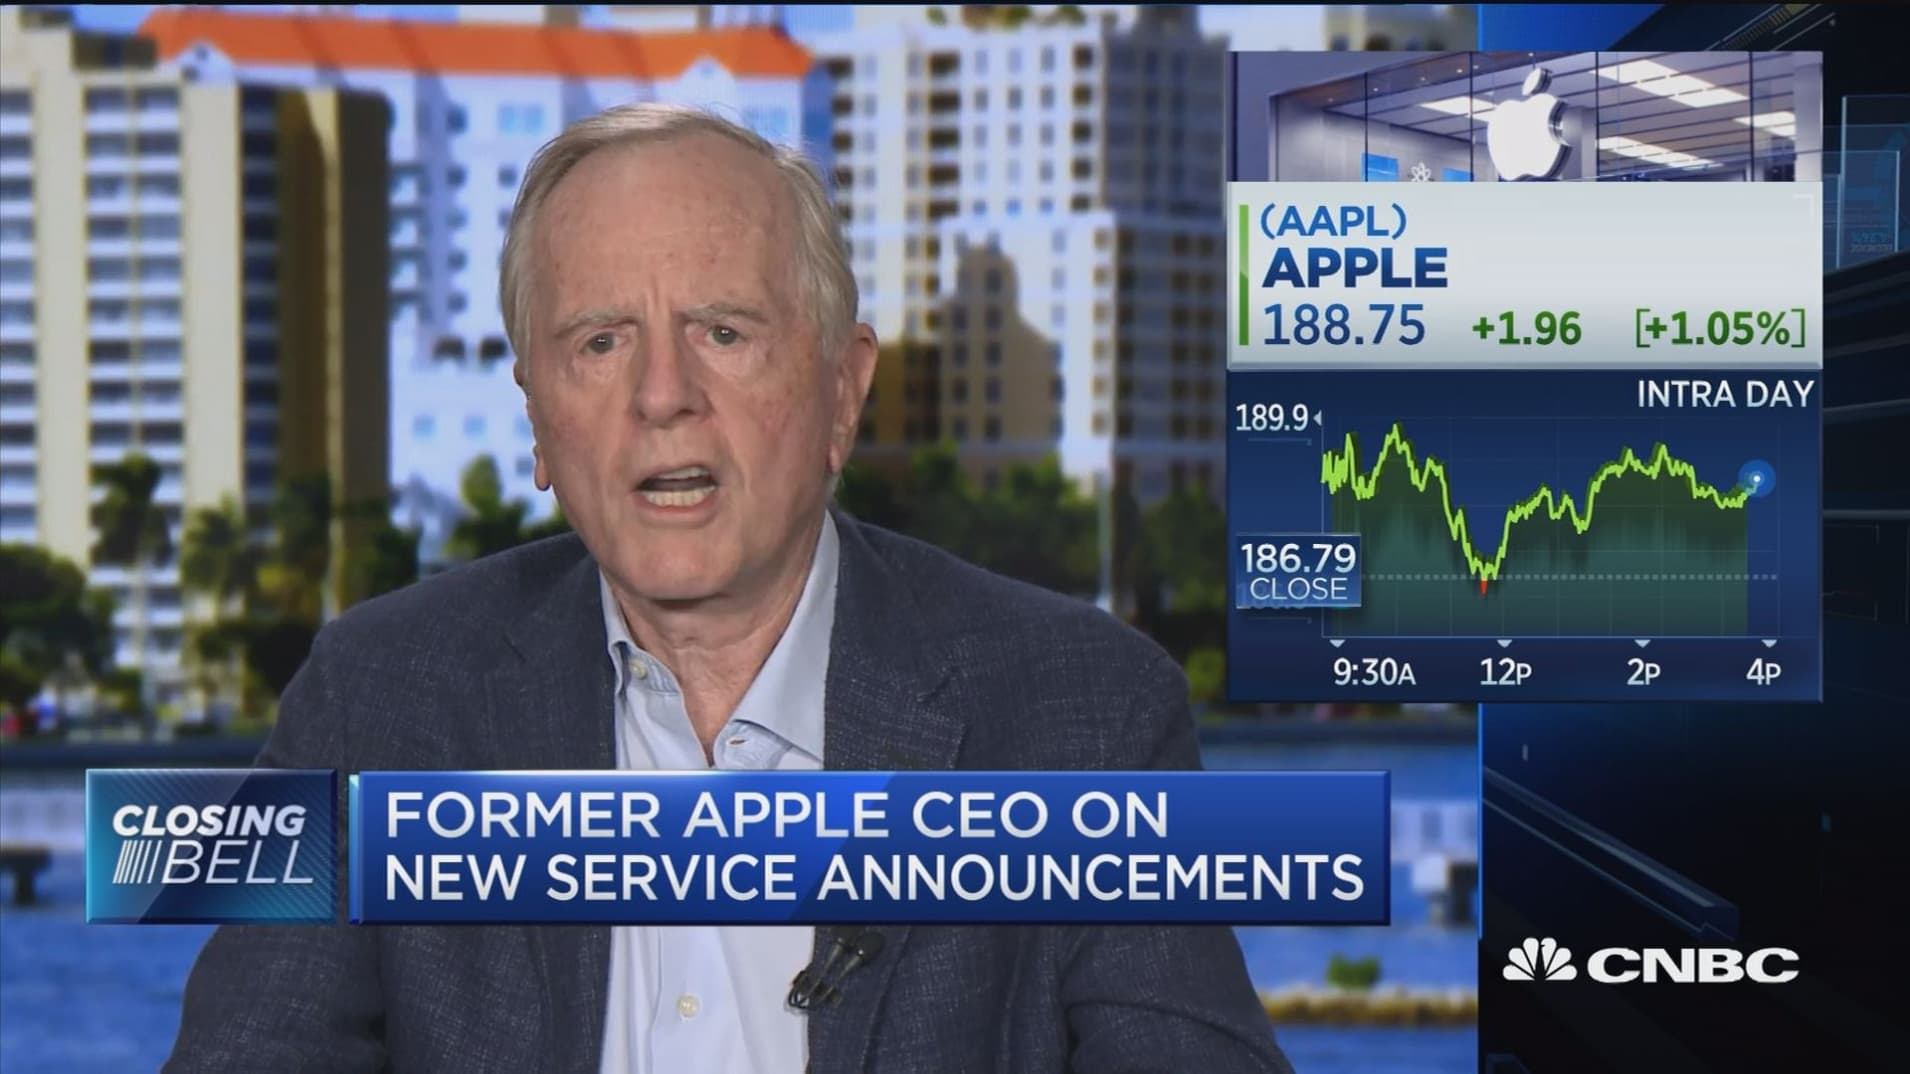 Apple can see incredible profits from its move into health tech: Former CEO John Sculley